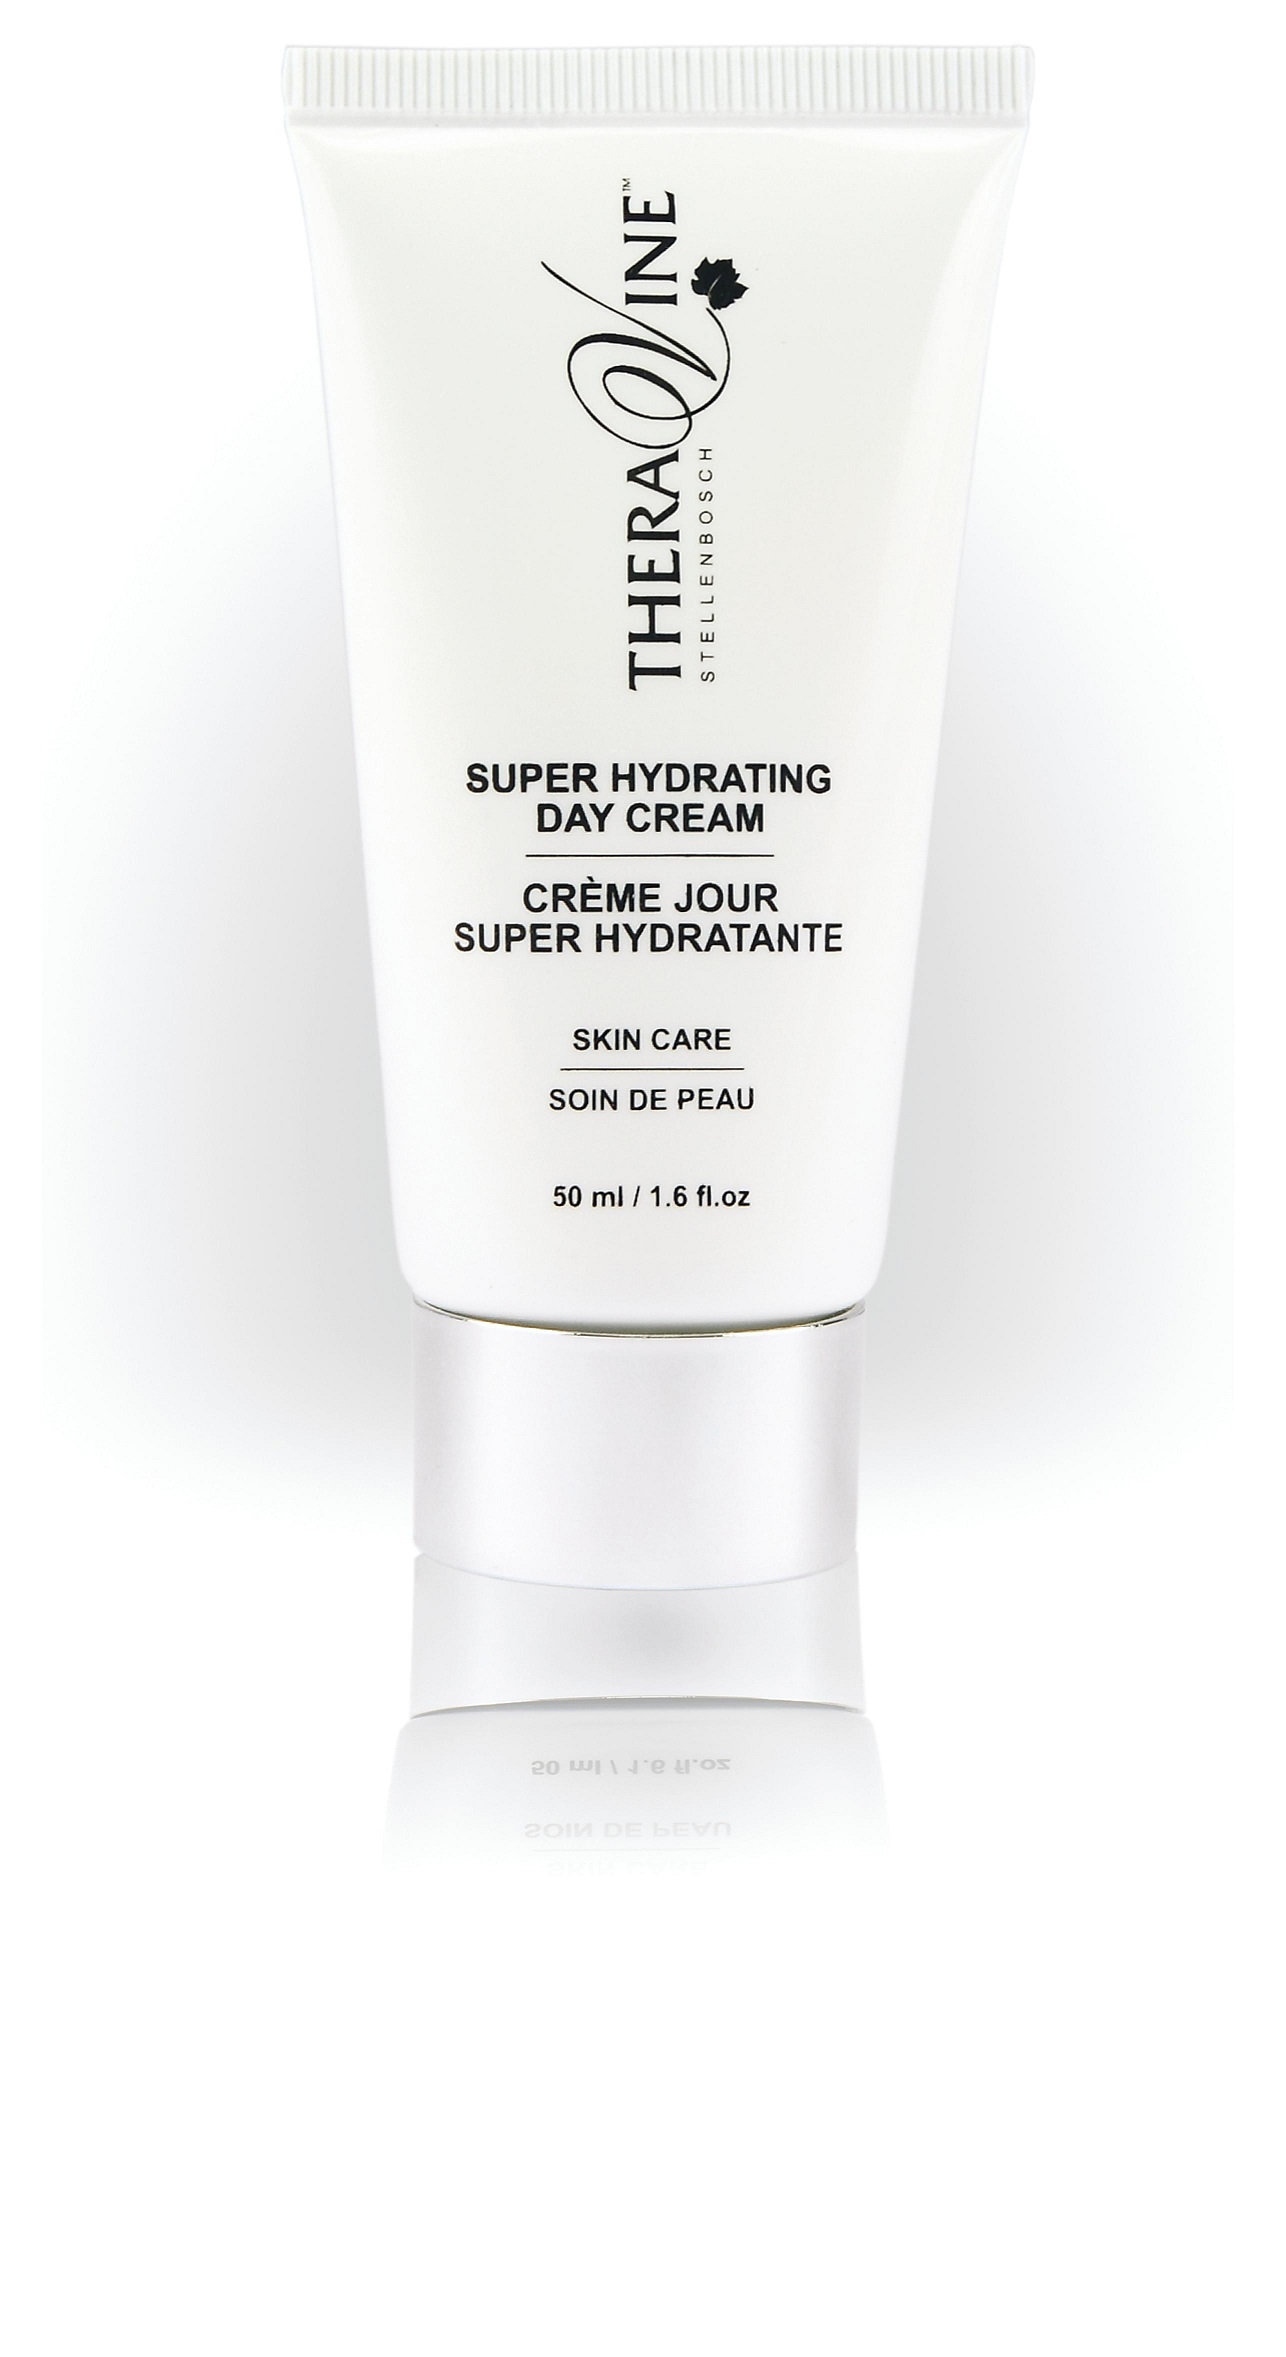 Super Hydrating Day Cream